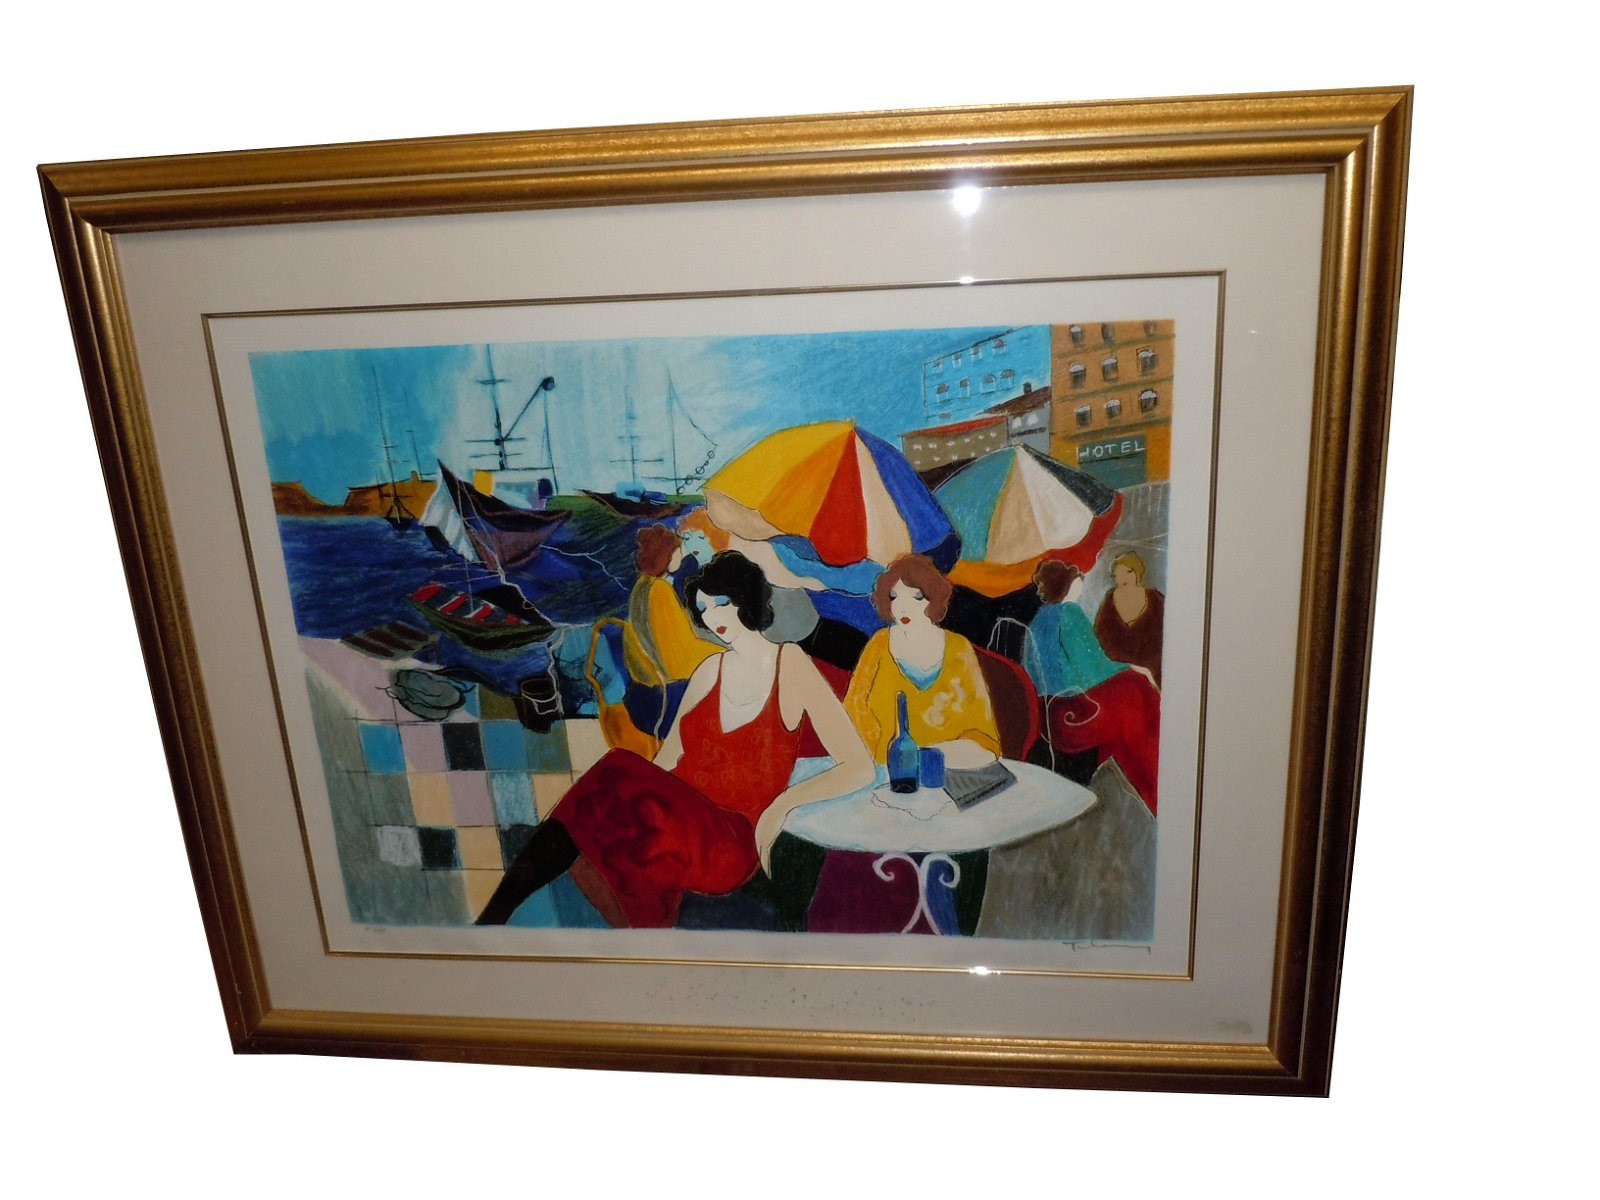 ITZCHAK TARKAY OUTDOOR SEASIDE CAFE SIGNED LITHOGRAPH